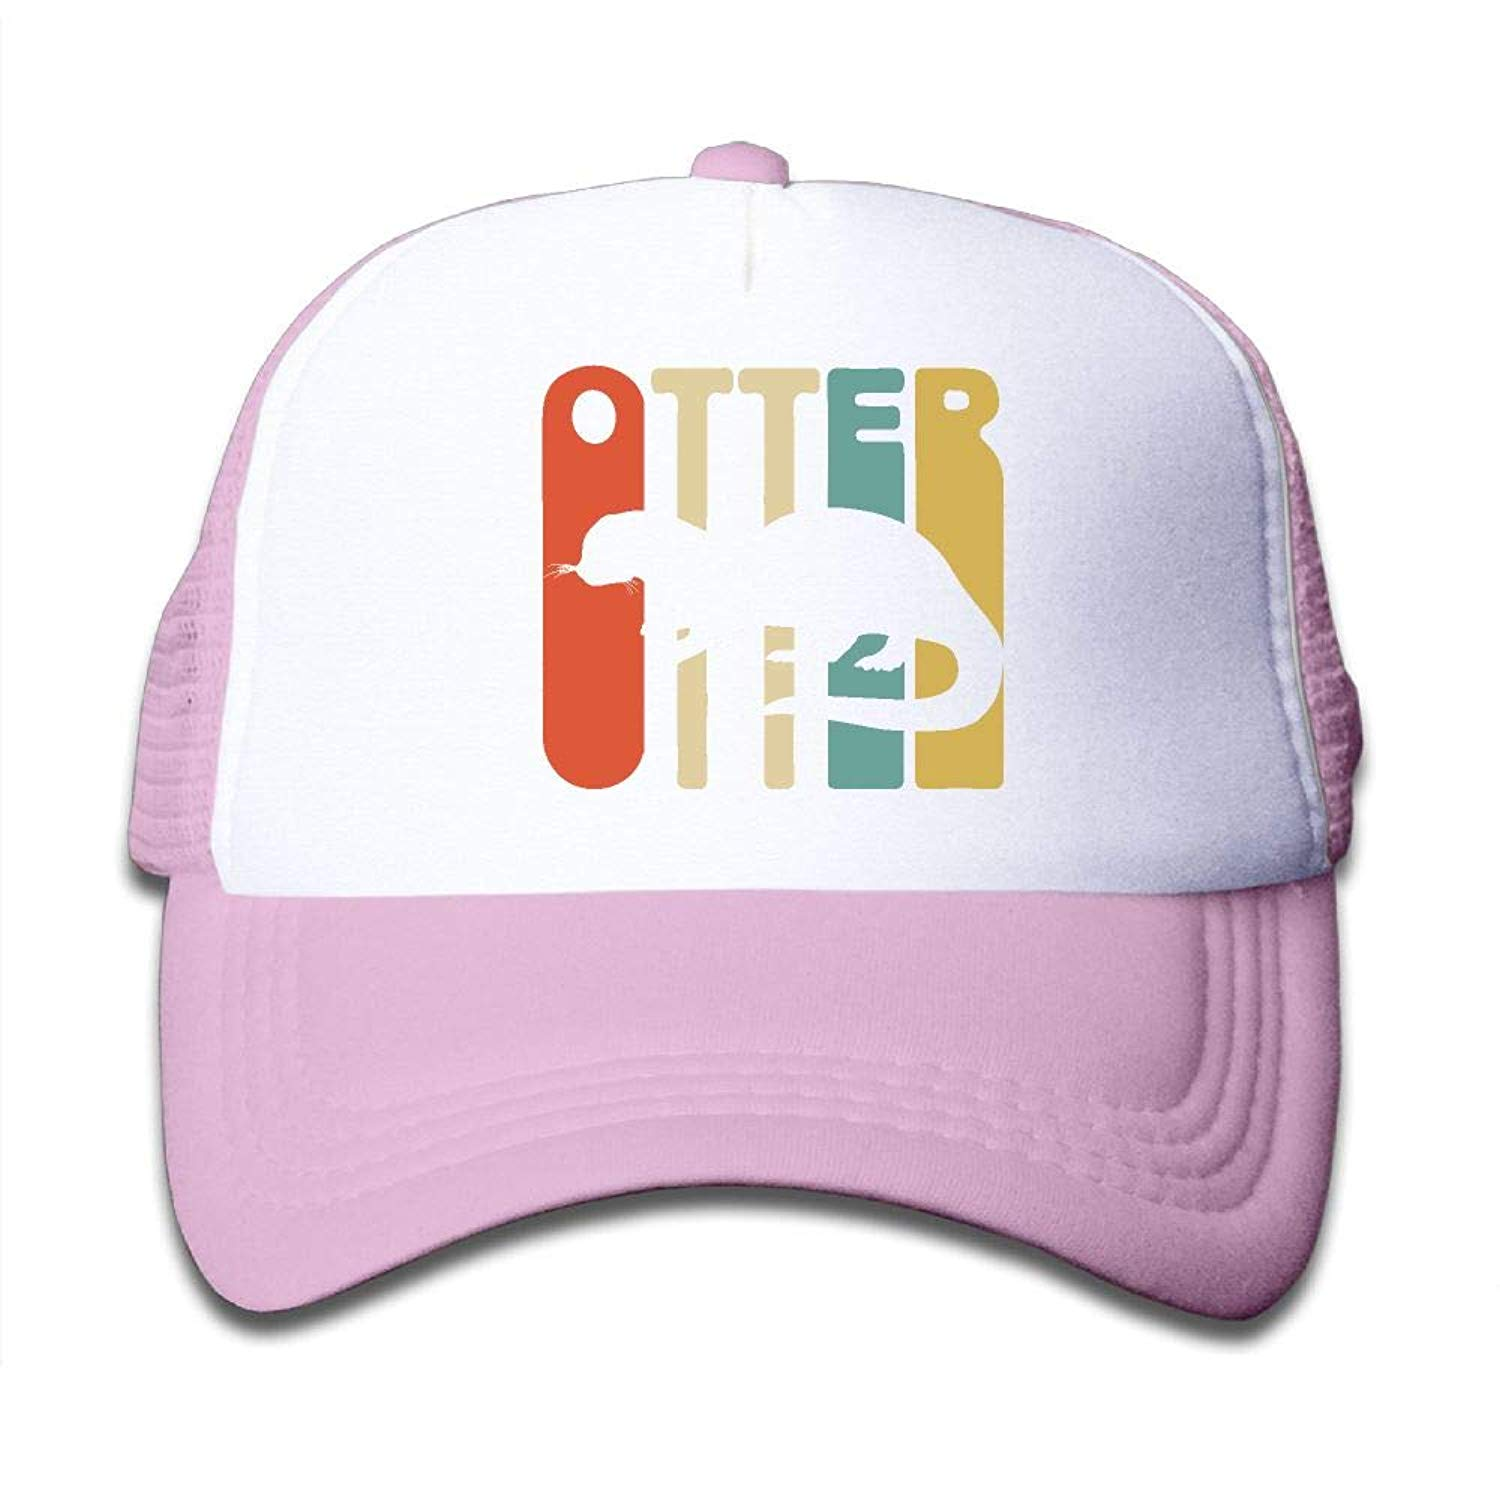 eabbaf6c66b Get Quotations · Vintage Style Otter2 On Boys and Girls Trucker Hat